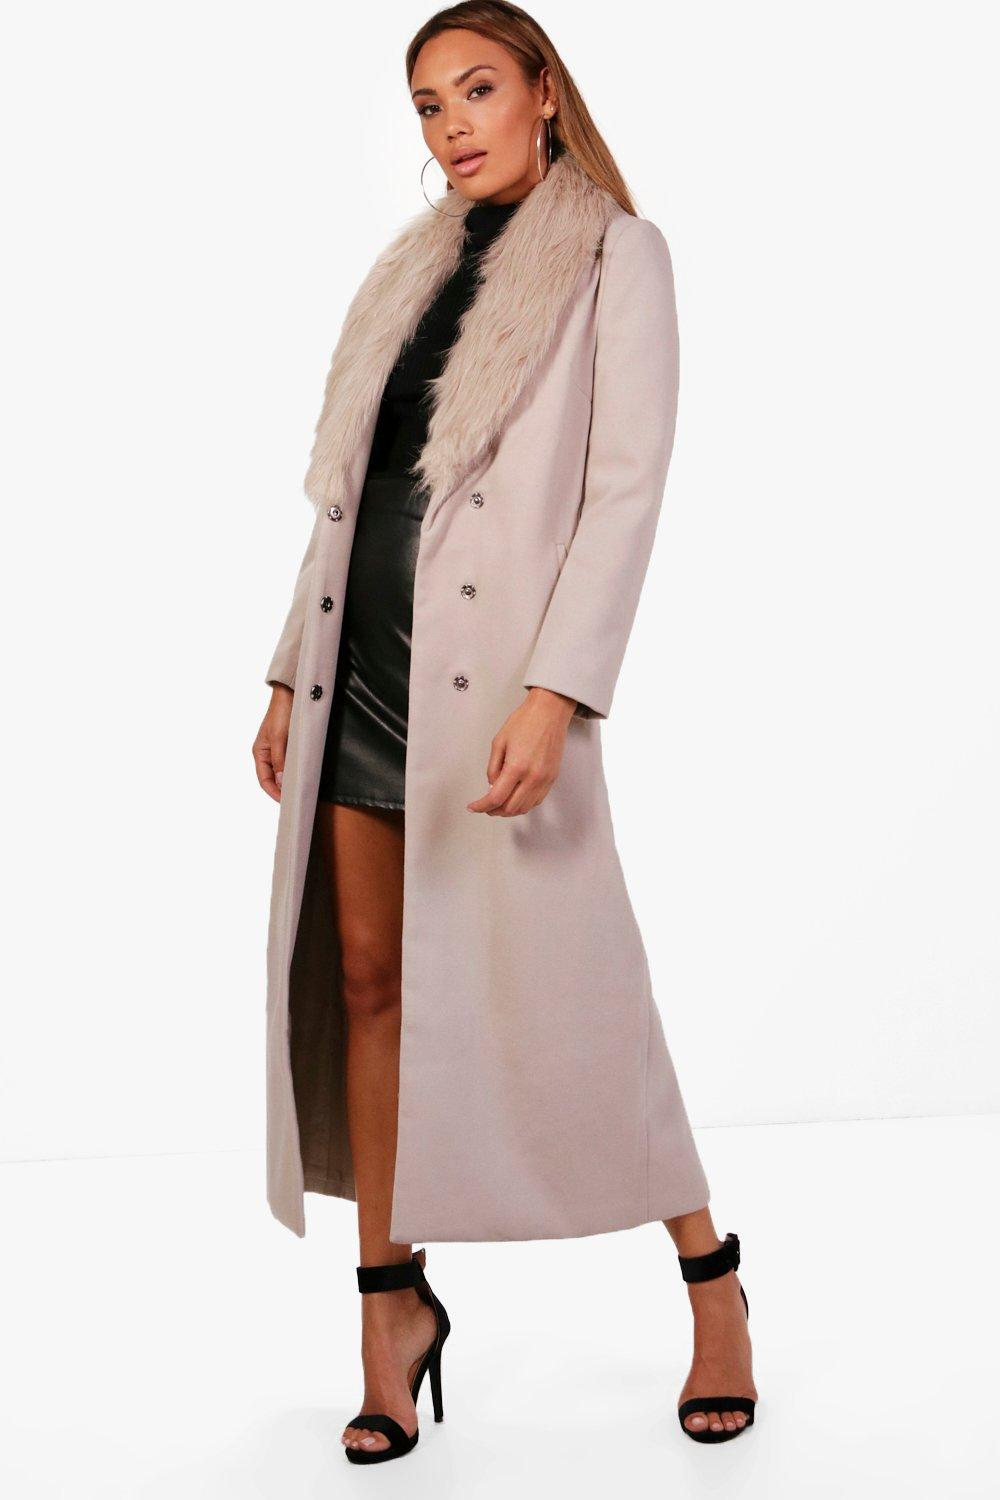 Maxi Faux Fur Collar Wool Look Coat - camel